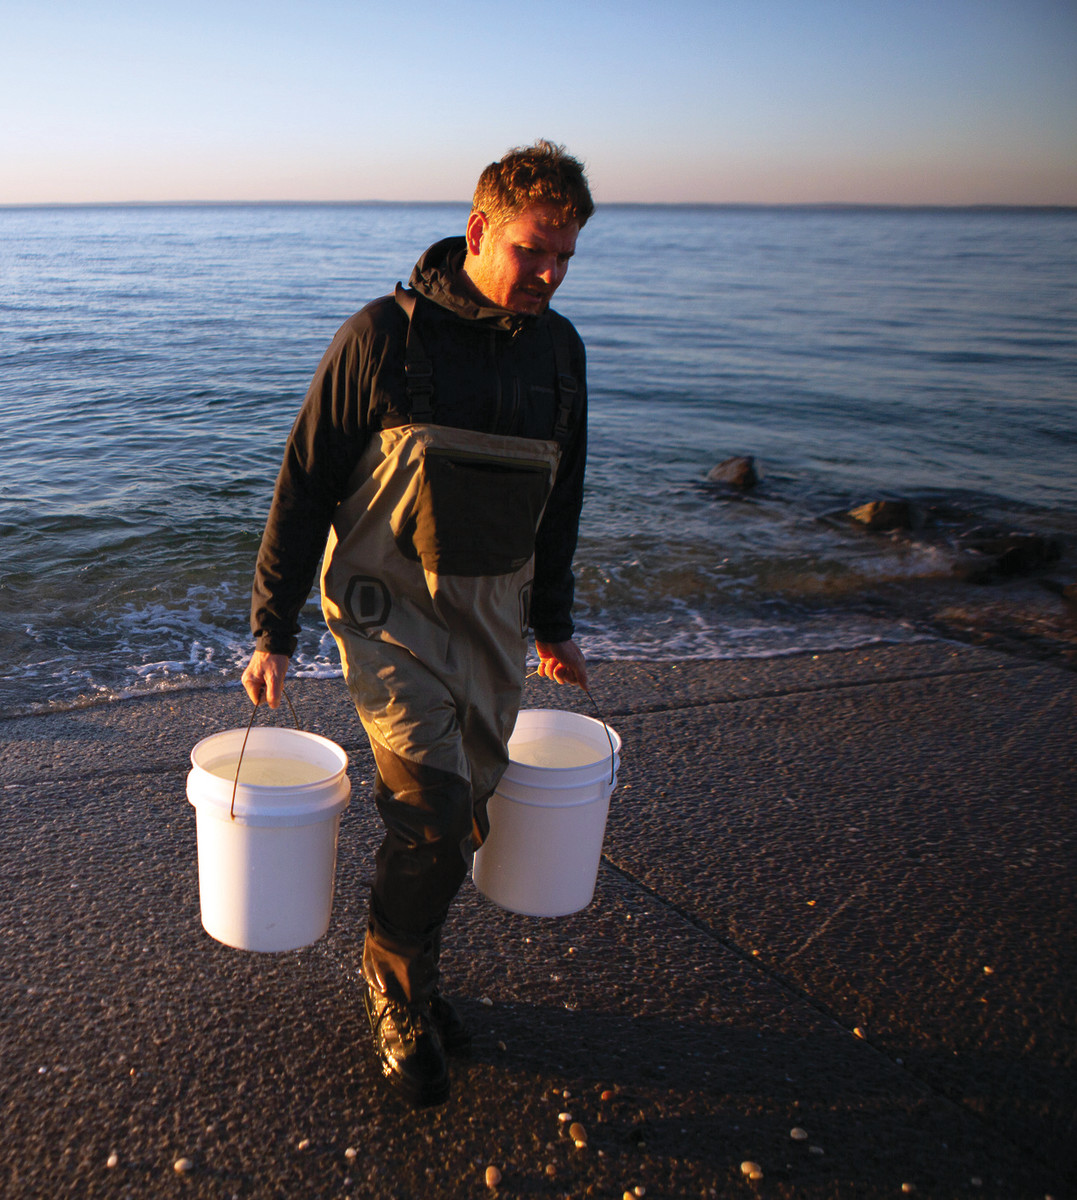 Baldwin gathers buckets of sea water in preparation for homemade sea salt.